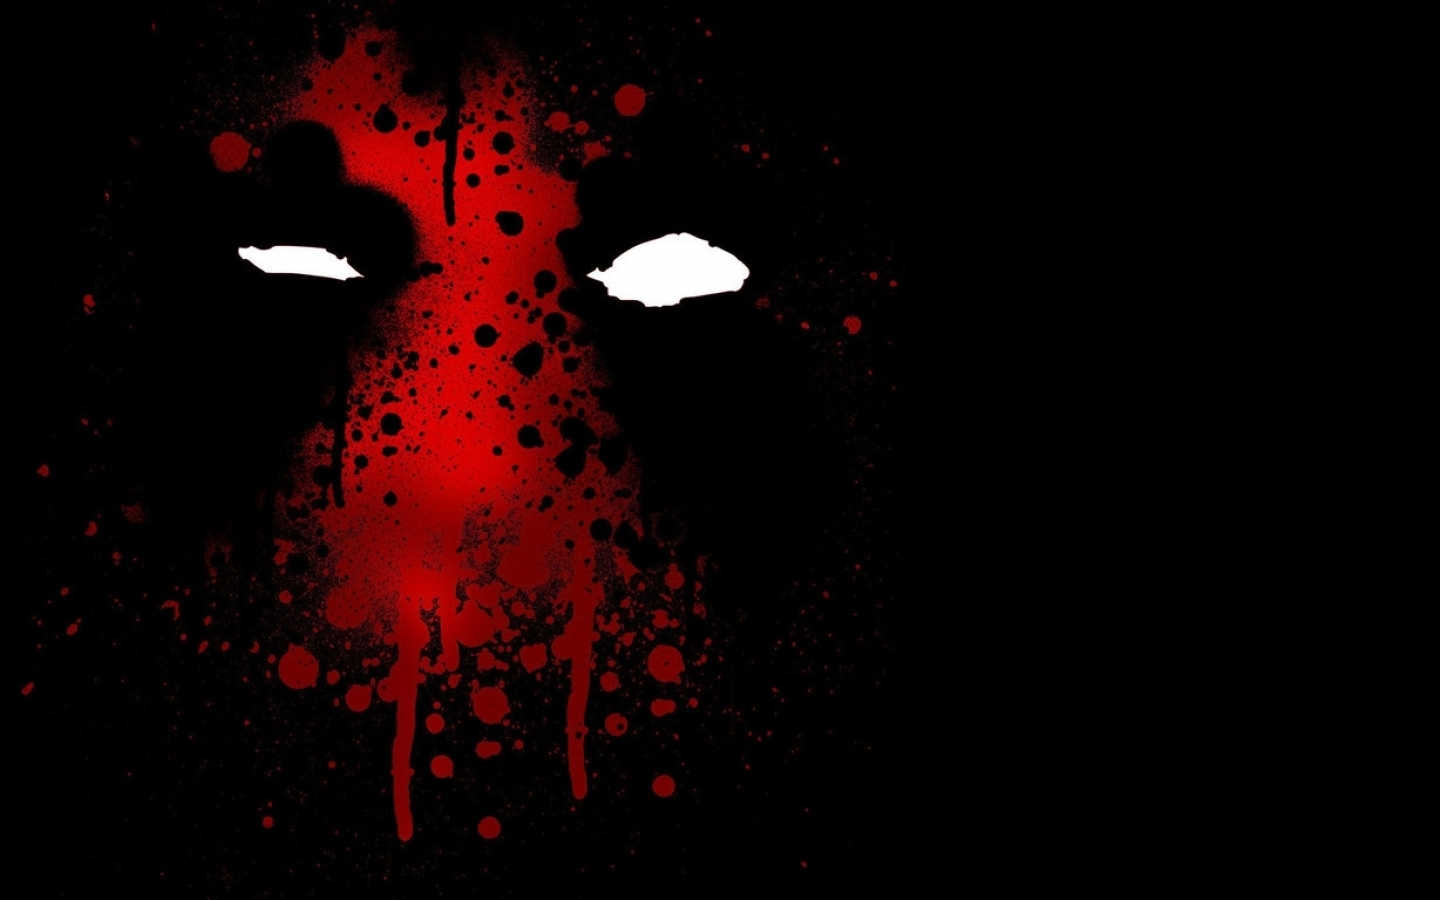 Wallpapers hd 35 wallpapers dead pool full hd y ultra k 4k for El mejor fondo de pantalla